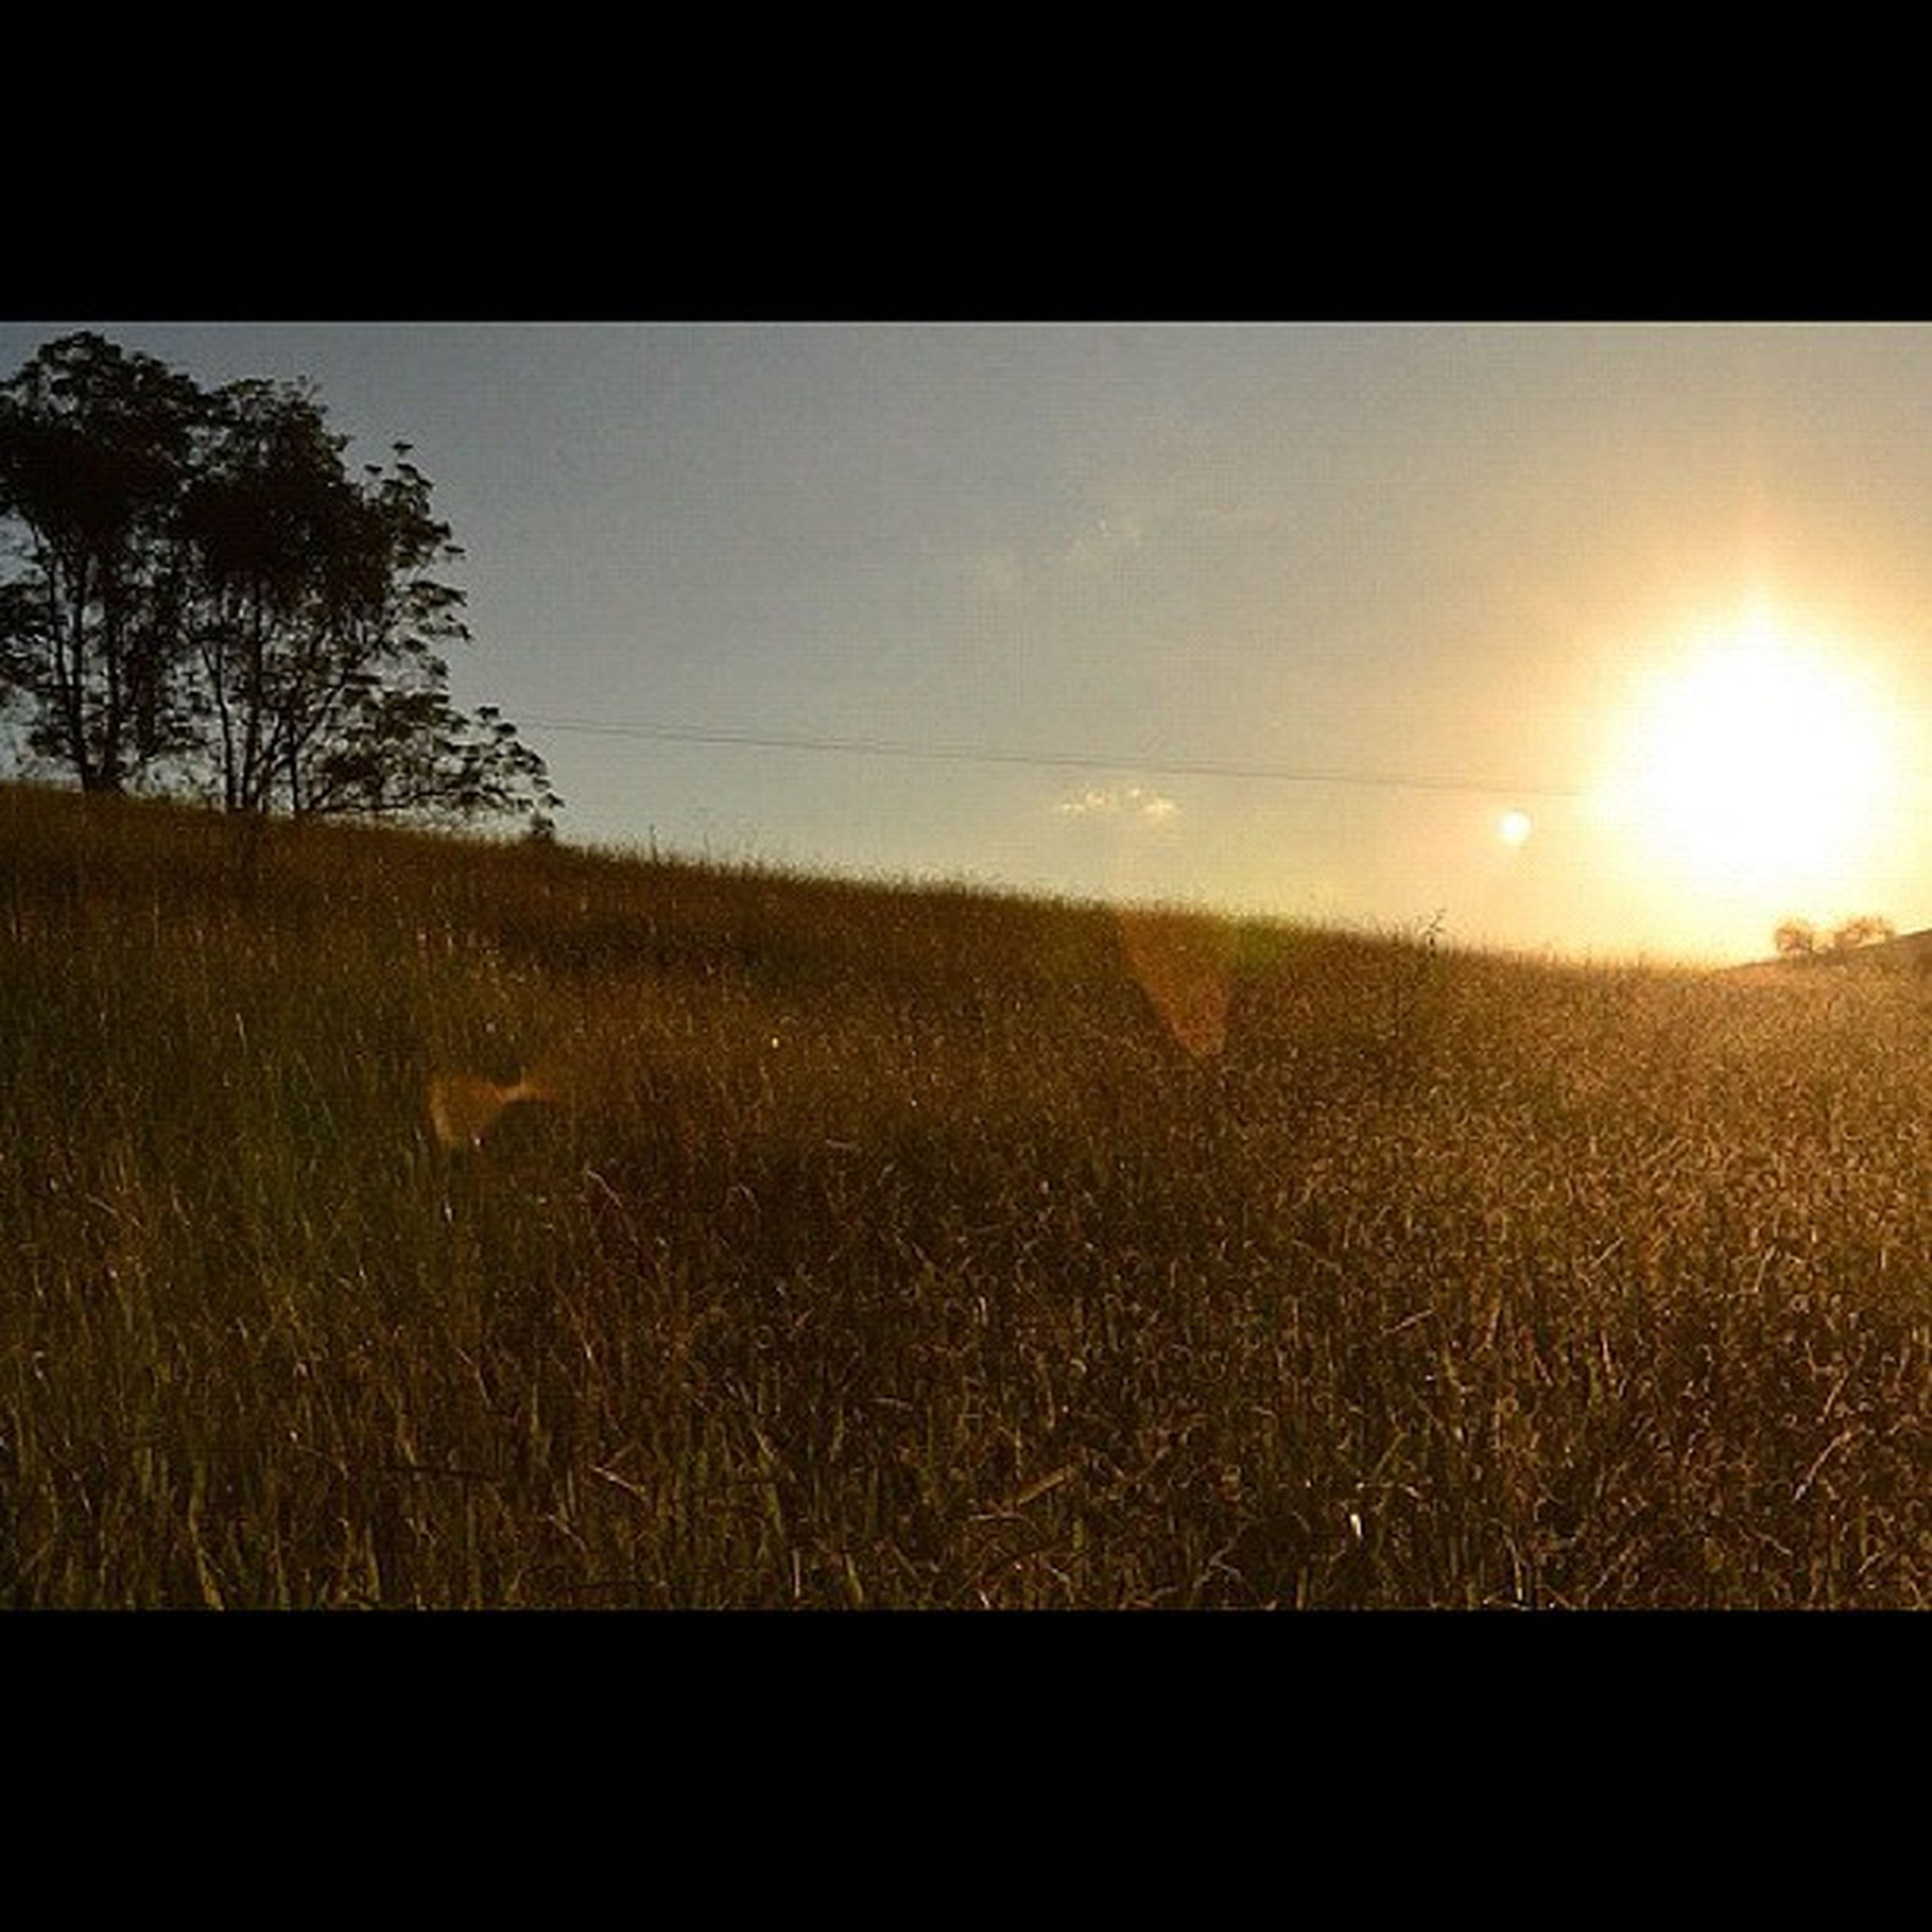 sun, grass, tranquil scene, field, tranquility, landscape, sunlight, beauty in nature, scenics, lens flare, sunbeam, sunset, nature, clear sky, transfer print, grassy, growth, auto post production filter, plant, sky